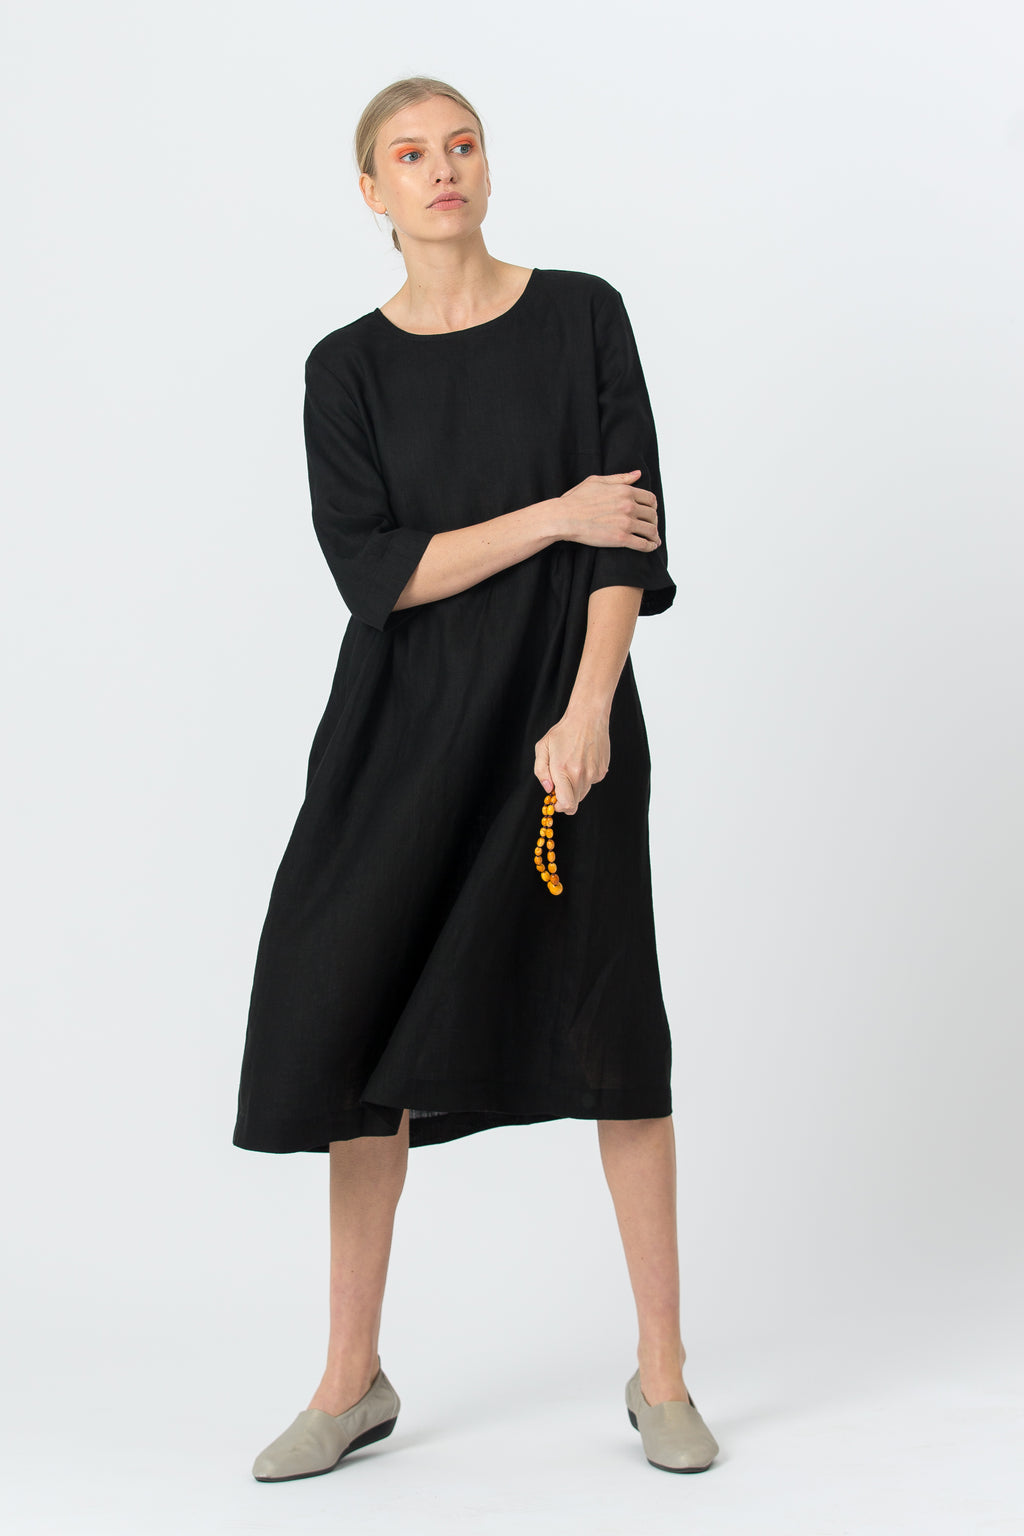 Linen Dress MONIKA black